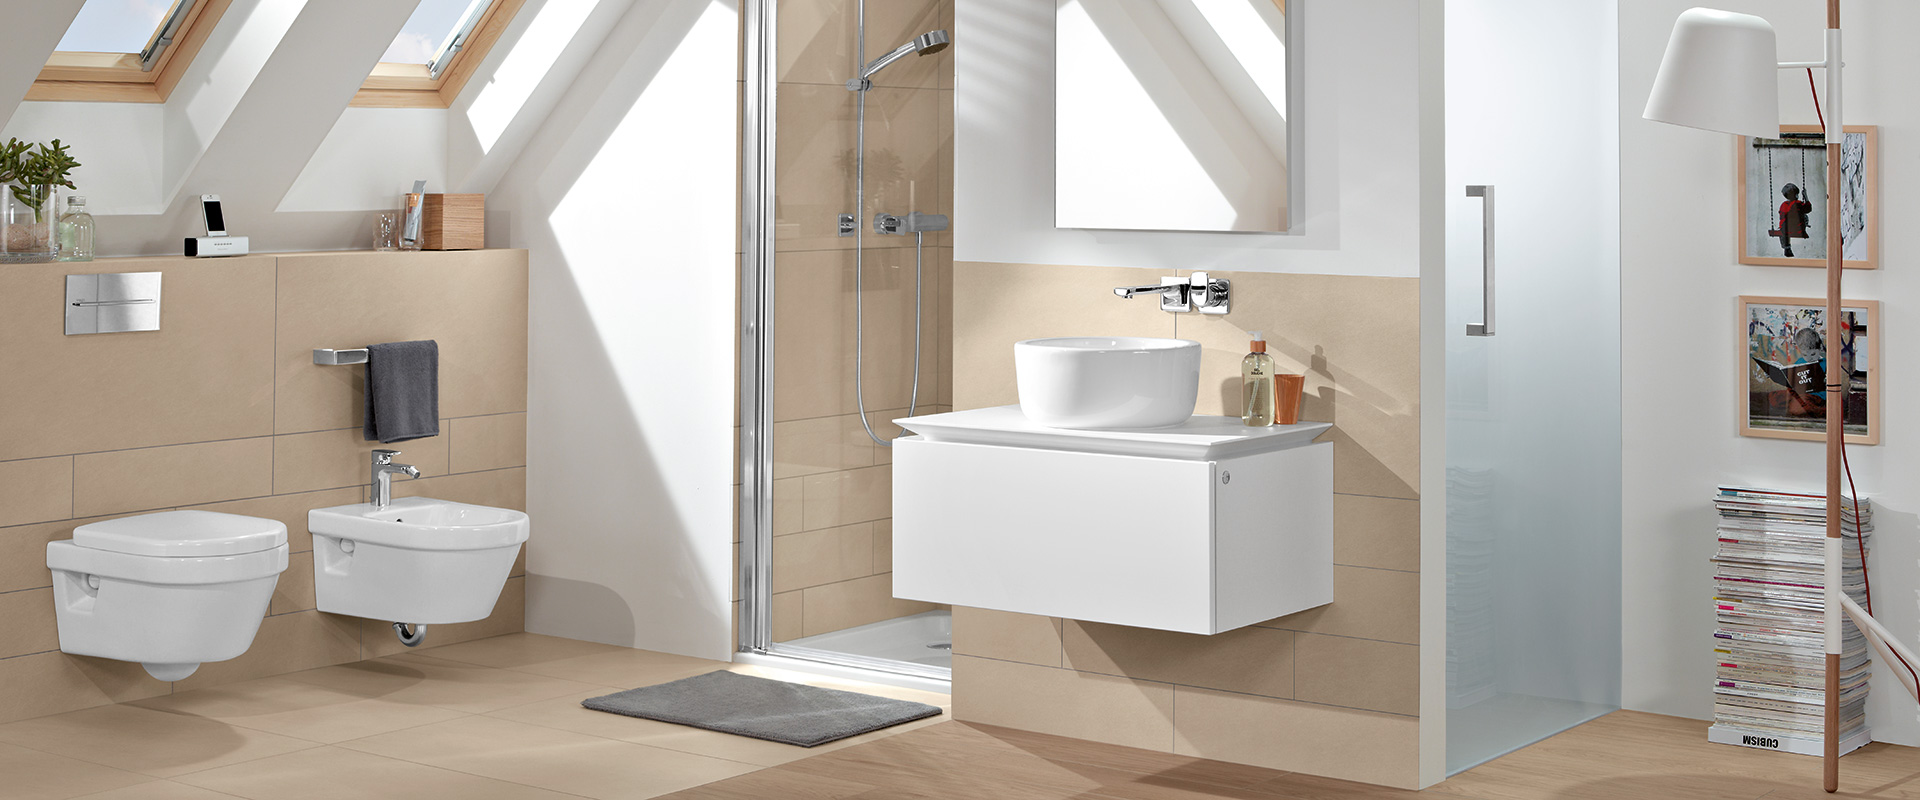 Architectura Collection Timeless Design Villeroy Boch